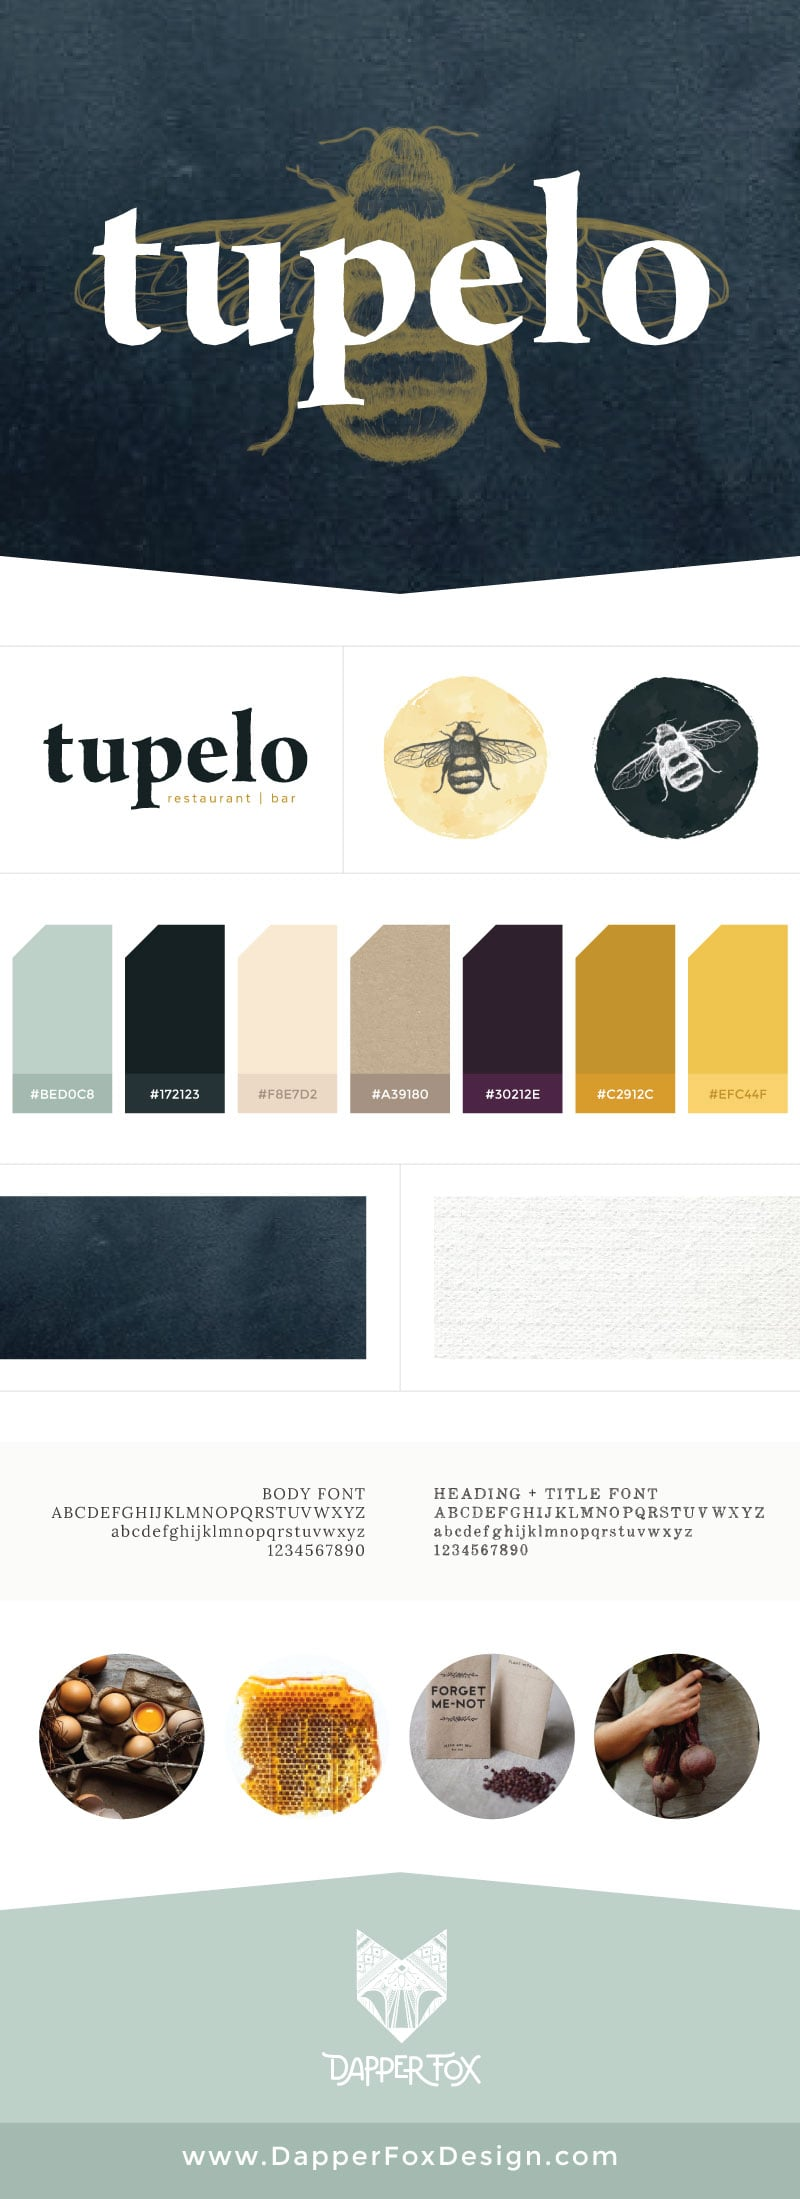 Tupelo Park City Branding Website Design Dapper Fox Design Branding Website Design